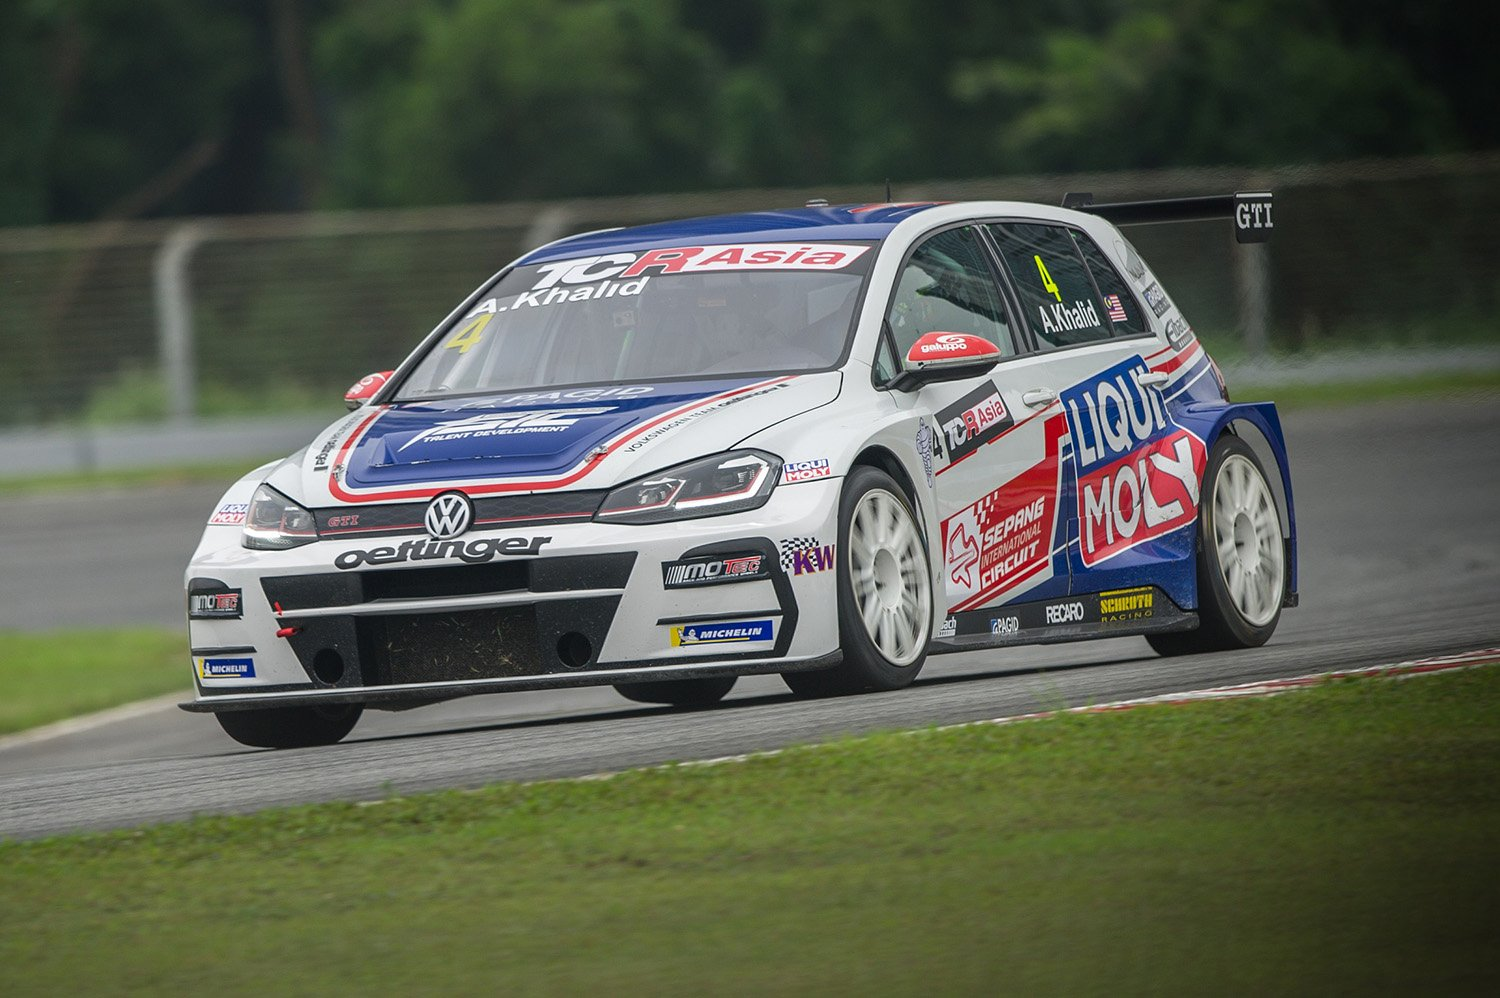 Second double podium weekend for Volkswagen Team Oettinger in Zhejiang